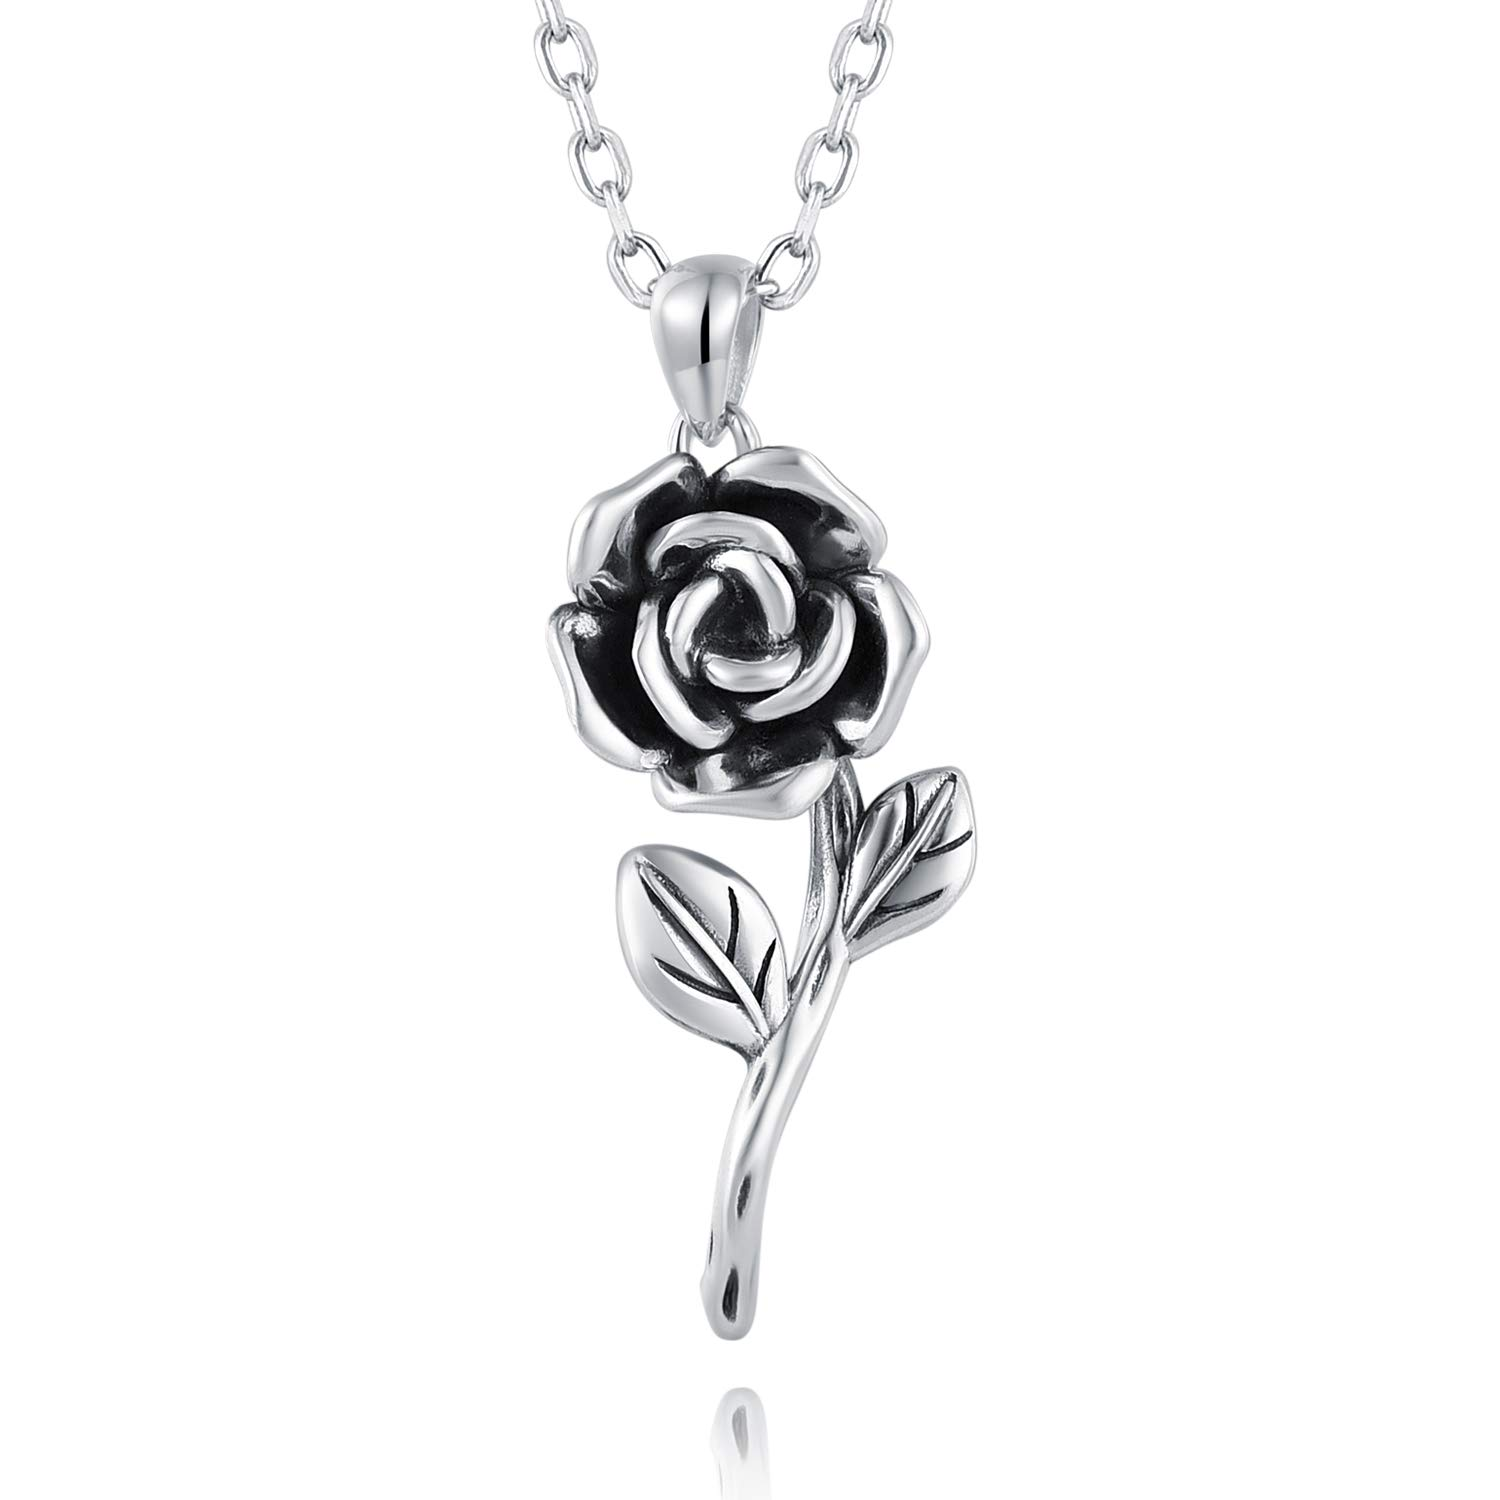 c112110dedbb5 BEILIN 925 Sterling Silver Rose Flower Necklace Jewelry Gift for Women  Girls her